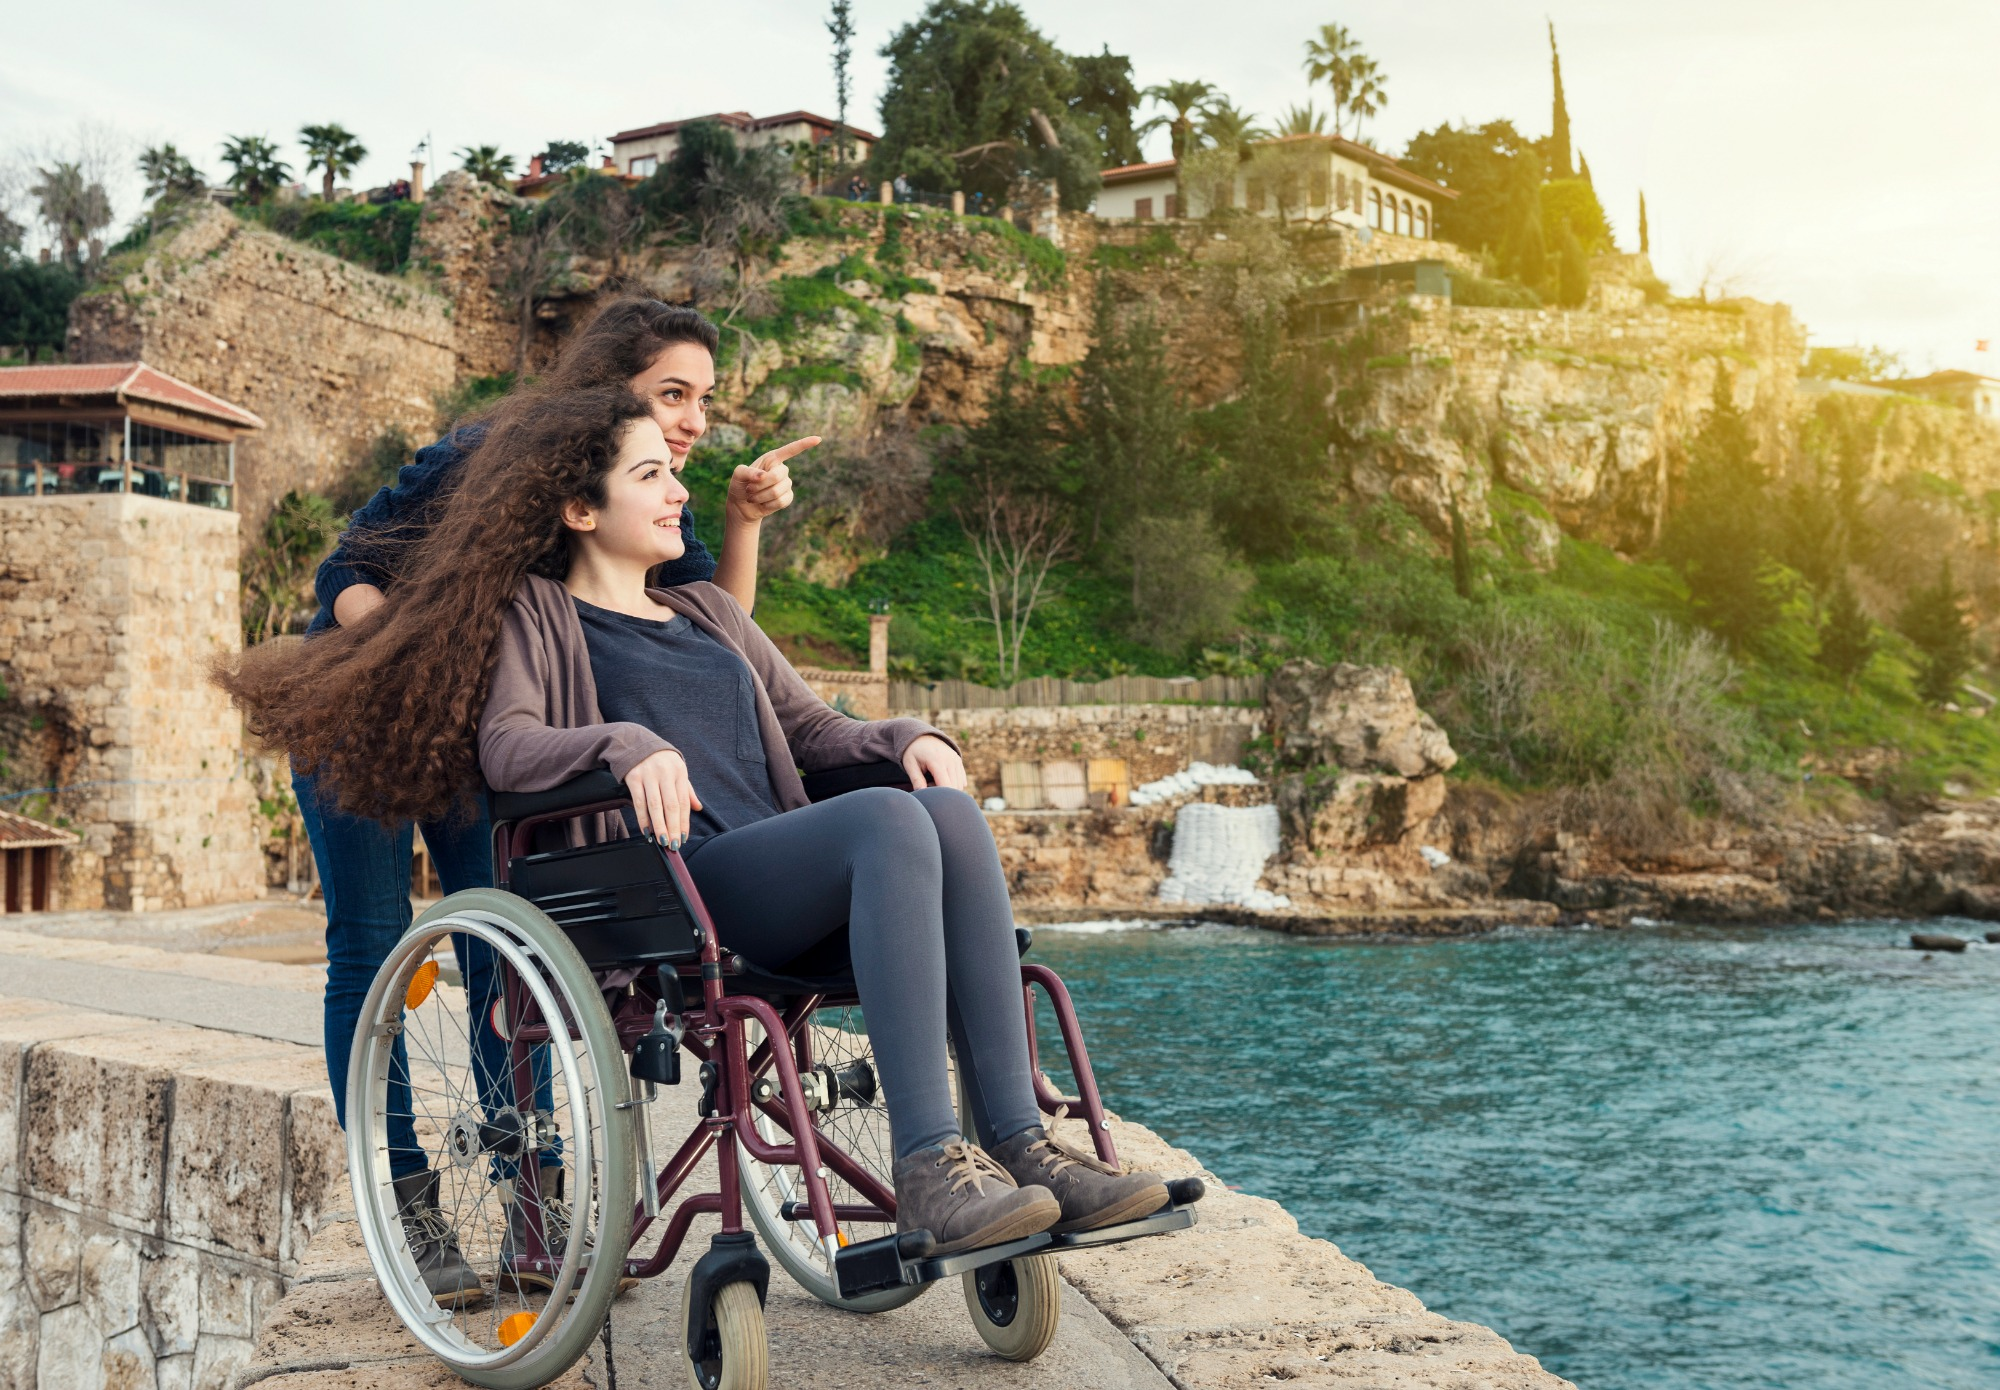 32 Vacation Destinations for Individuals with Special Needs